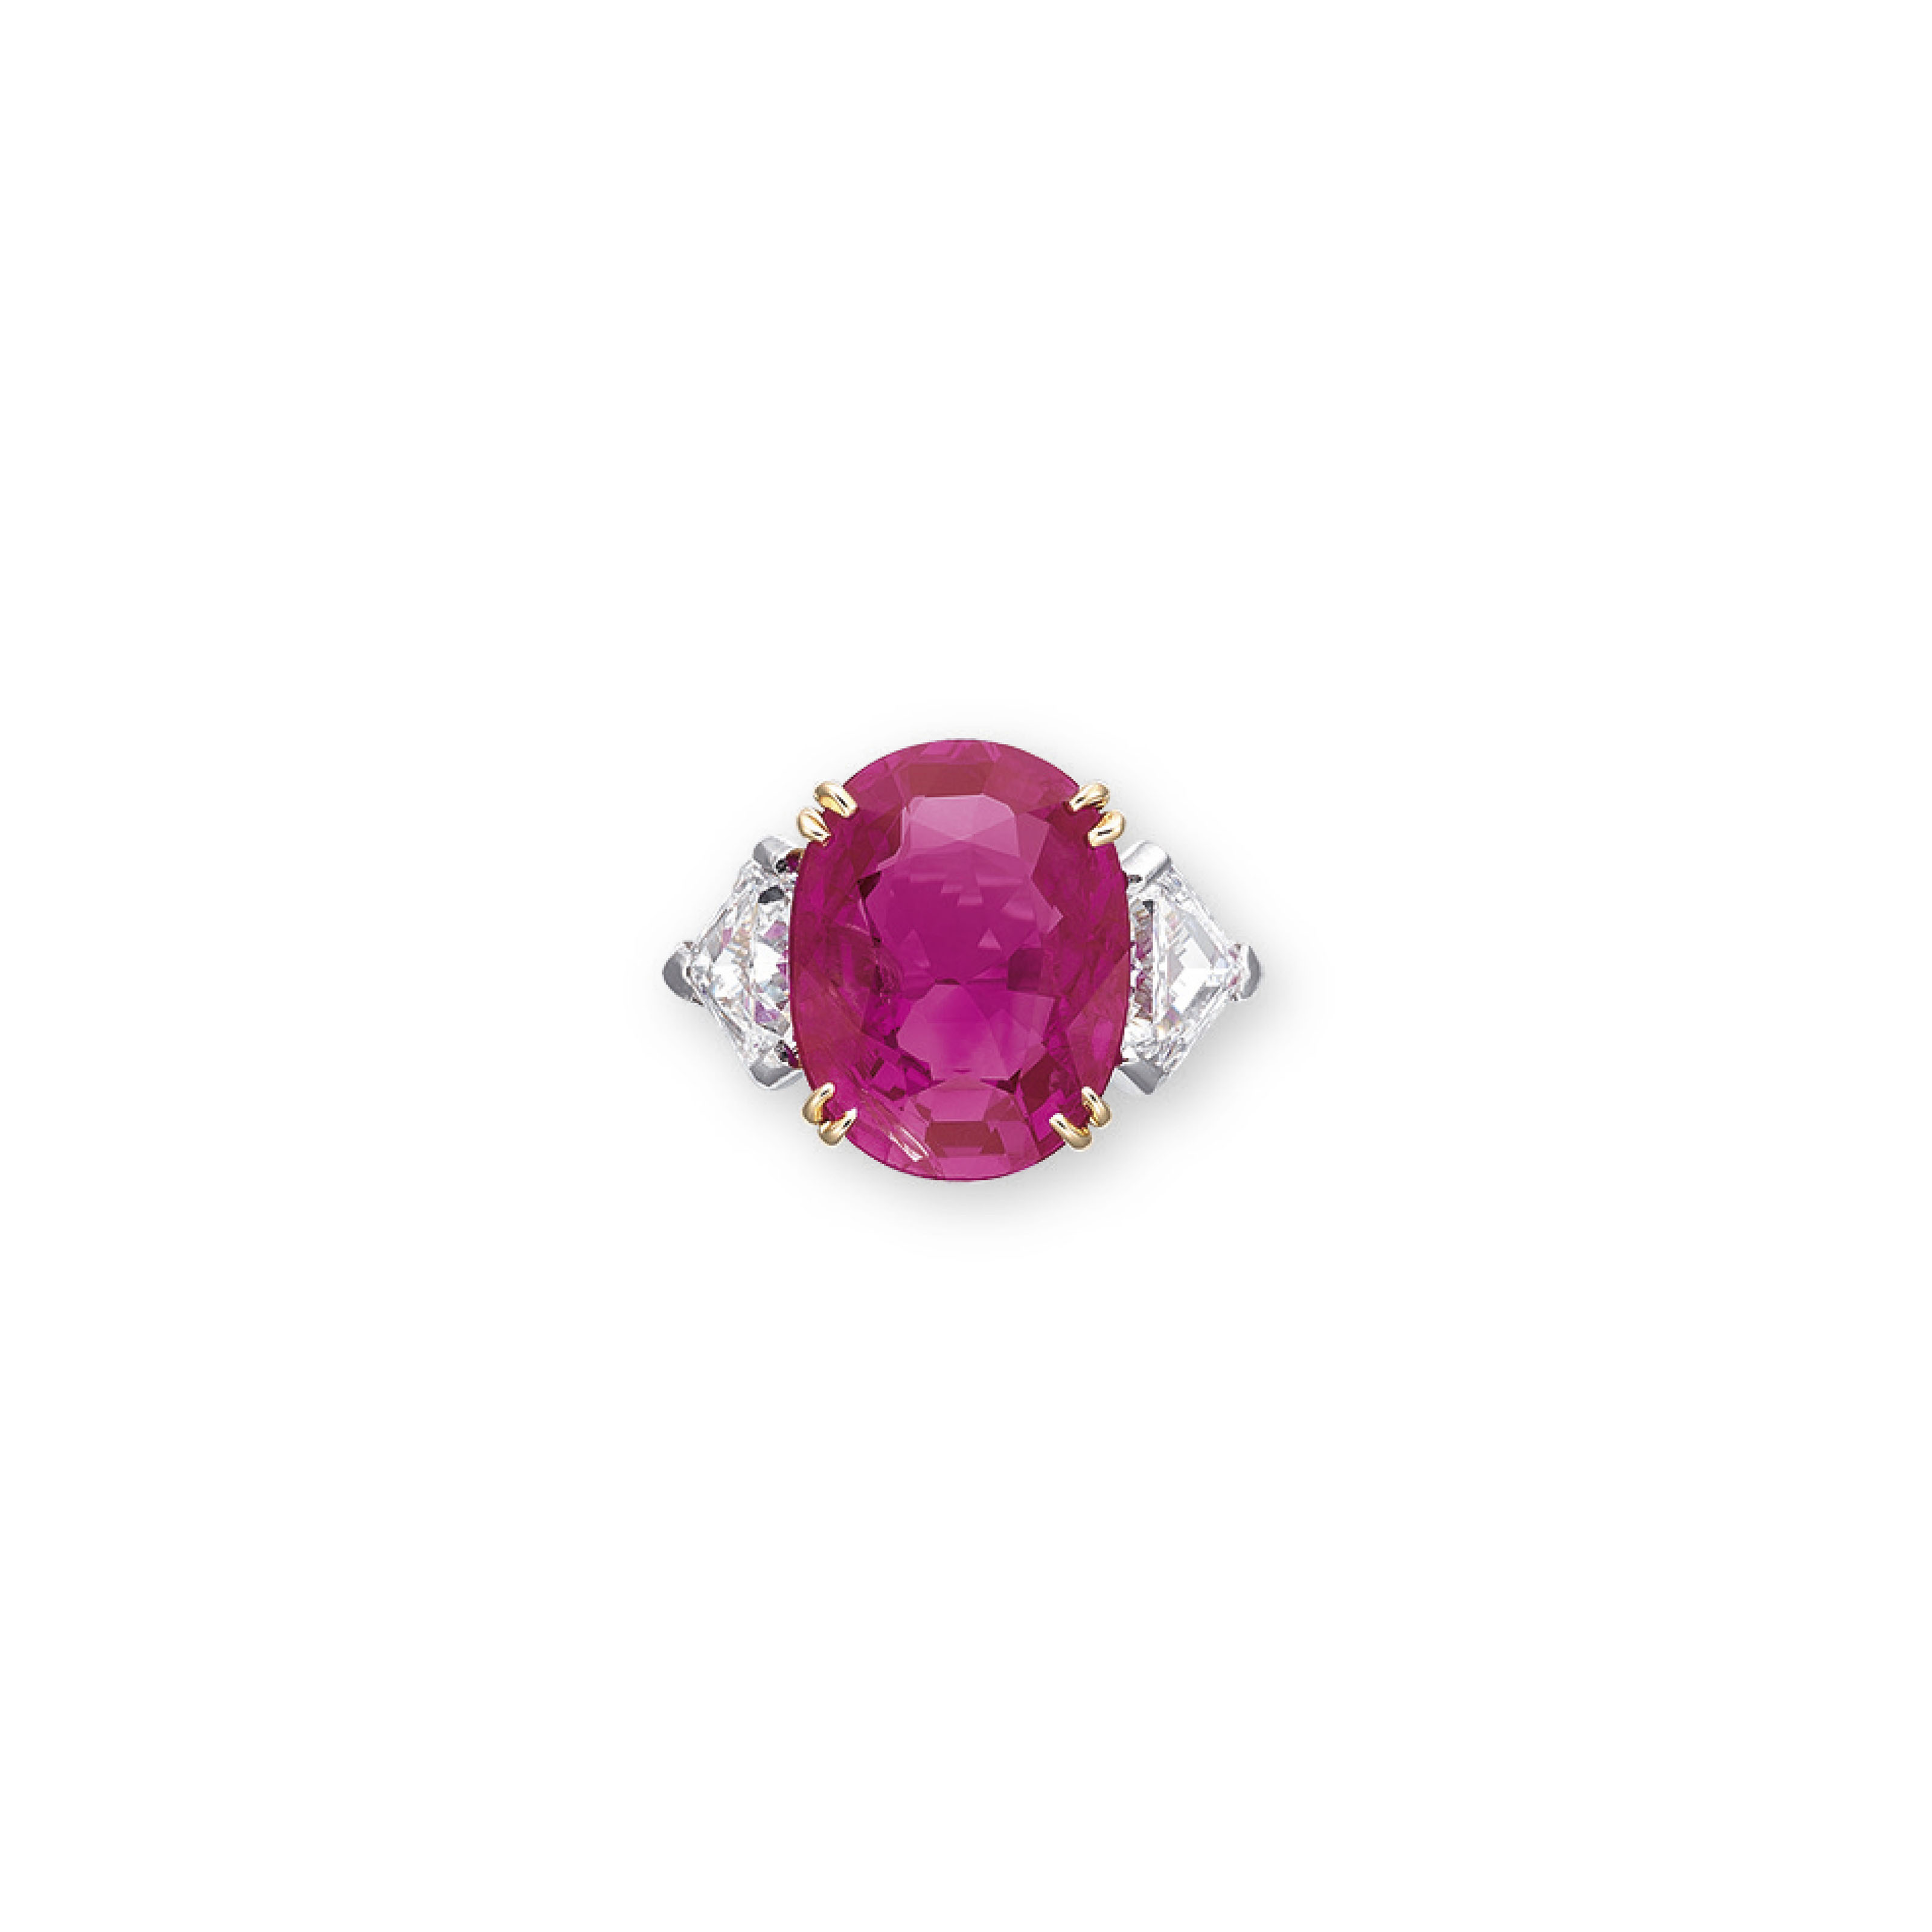 A RUBY AND DIAMOND RING, BY CUSI